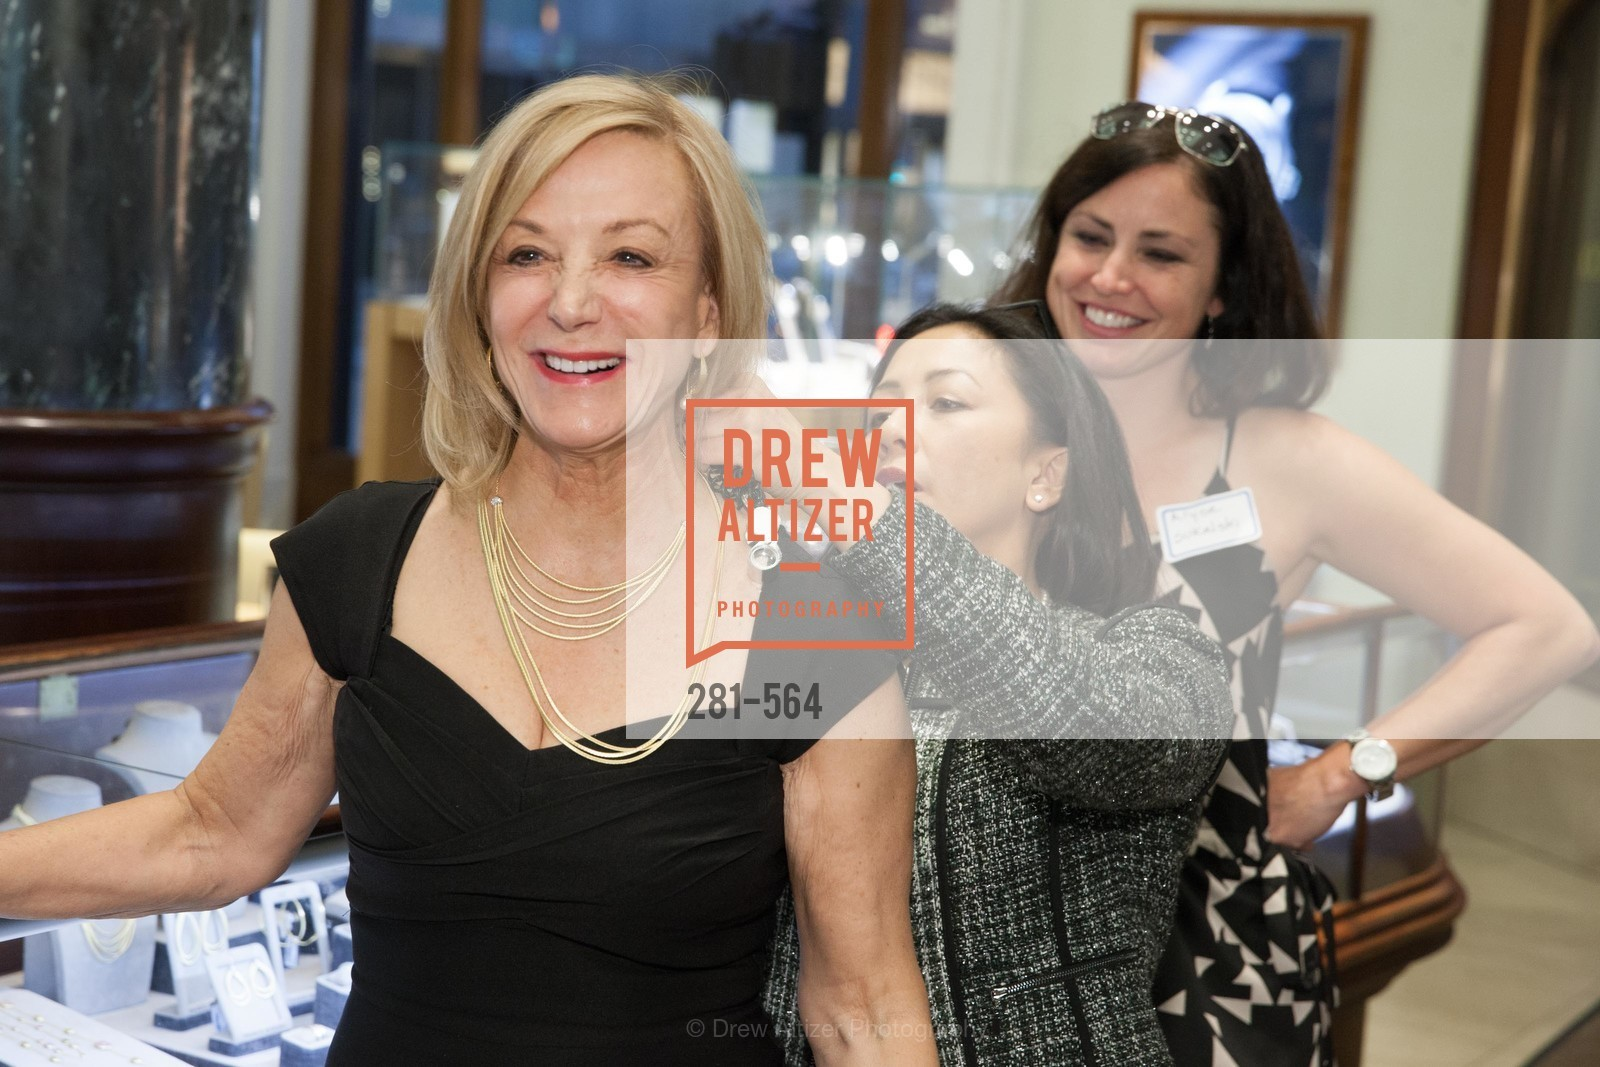 Judie Doherty, SHREVE & CO. Hosts AMERICAN CANCER SOCIETY BENEFIT, US, September 10th, 2014,Drew Altizer, Drew Altizer Photography, full-service agency, private events, San Francisco photographer, photographer california